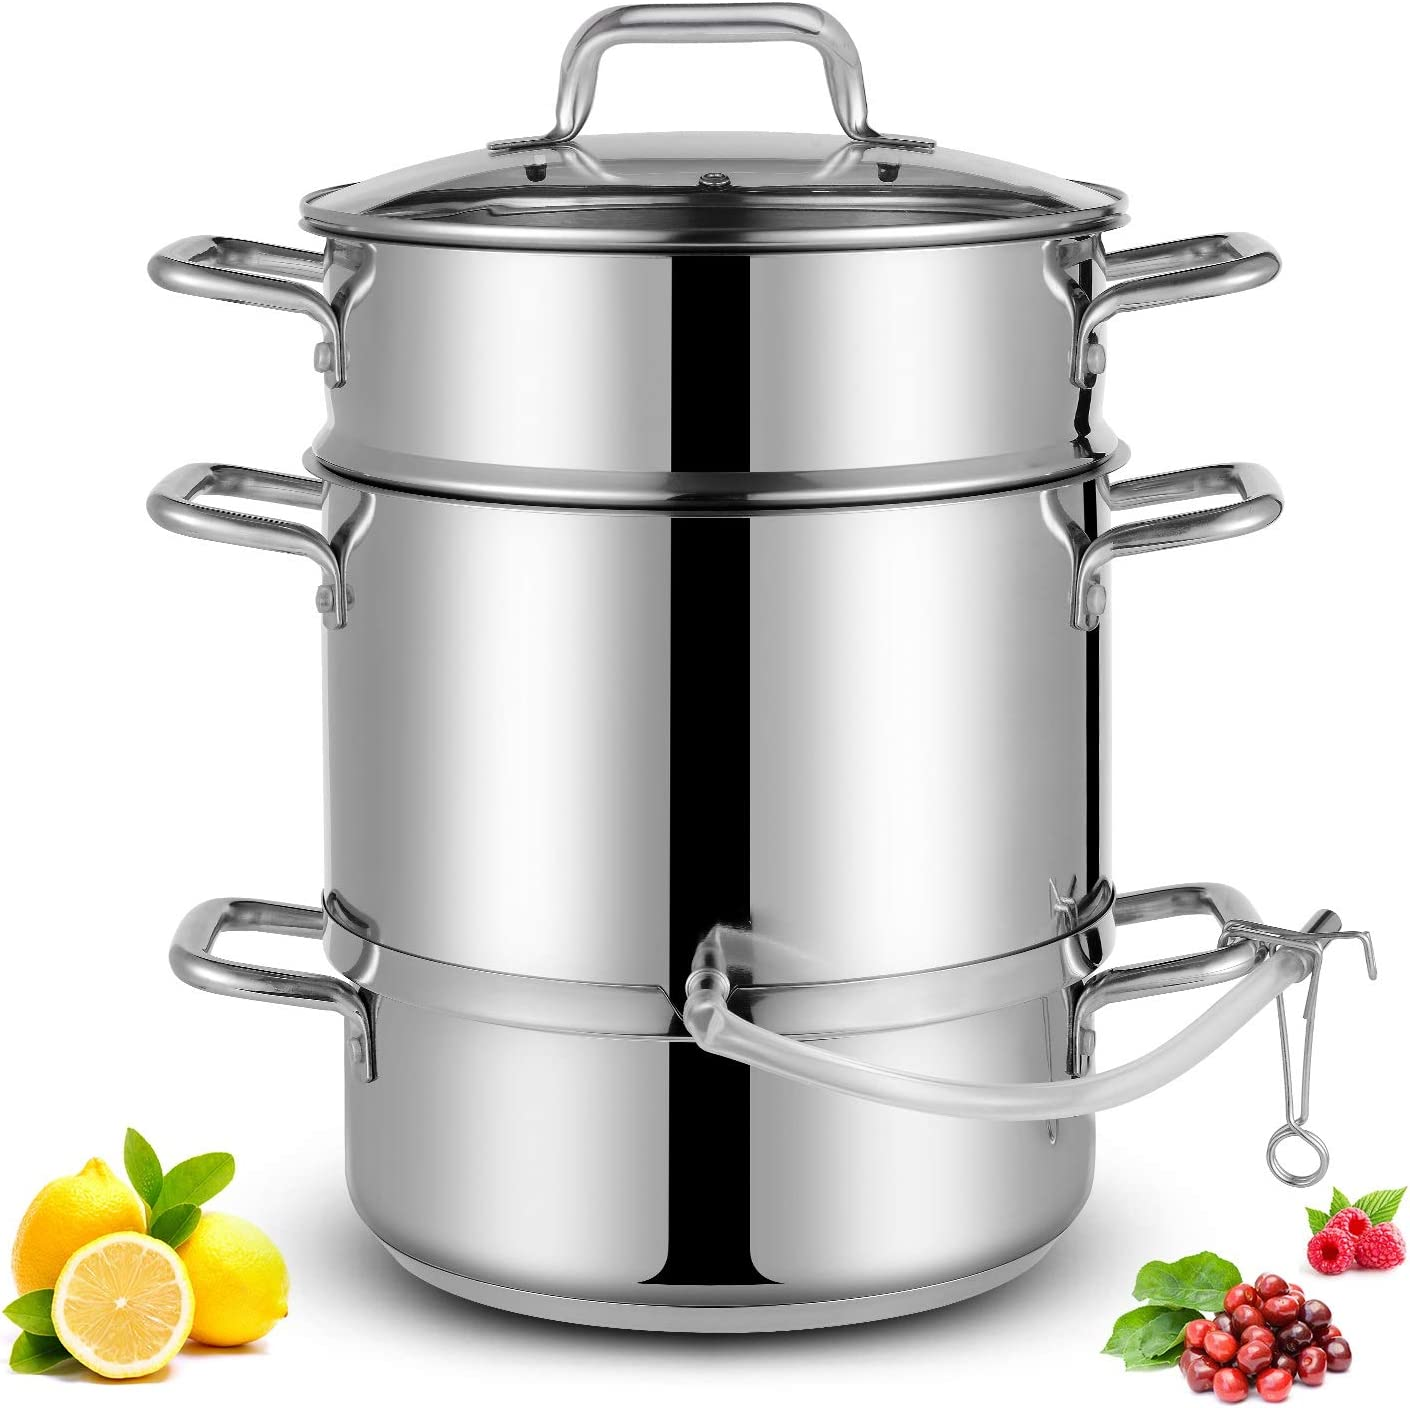 Cyrosa 11 QT Stainless Steel Fruit Vegetables steamer Pot for Making Juicer, Multipot Kitchen Cookware with Tempered Glass Lid, Juicer steamer pot with silicone hose, Clamp, double Loop Handles